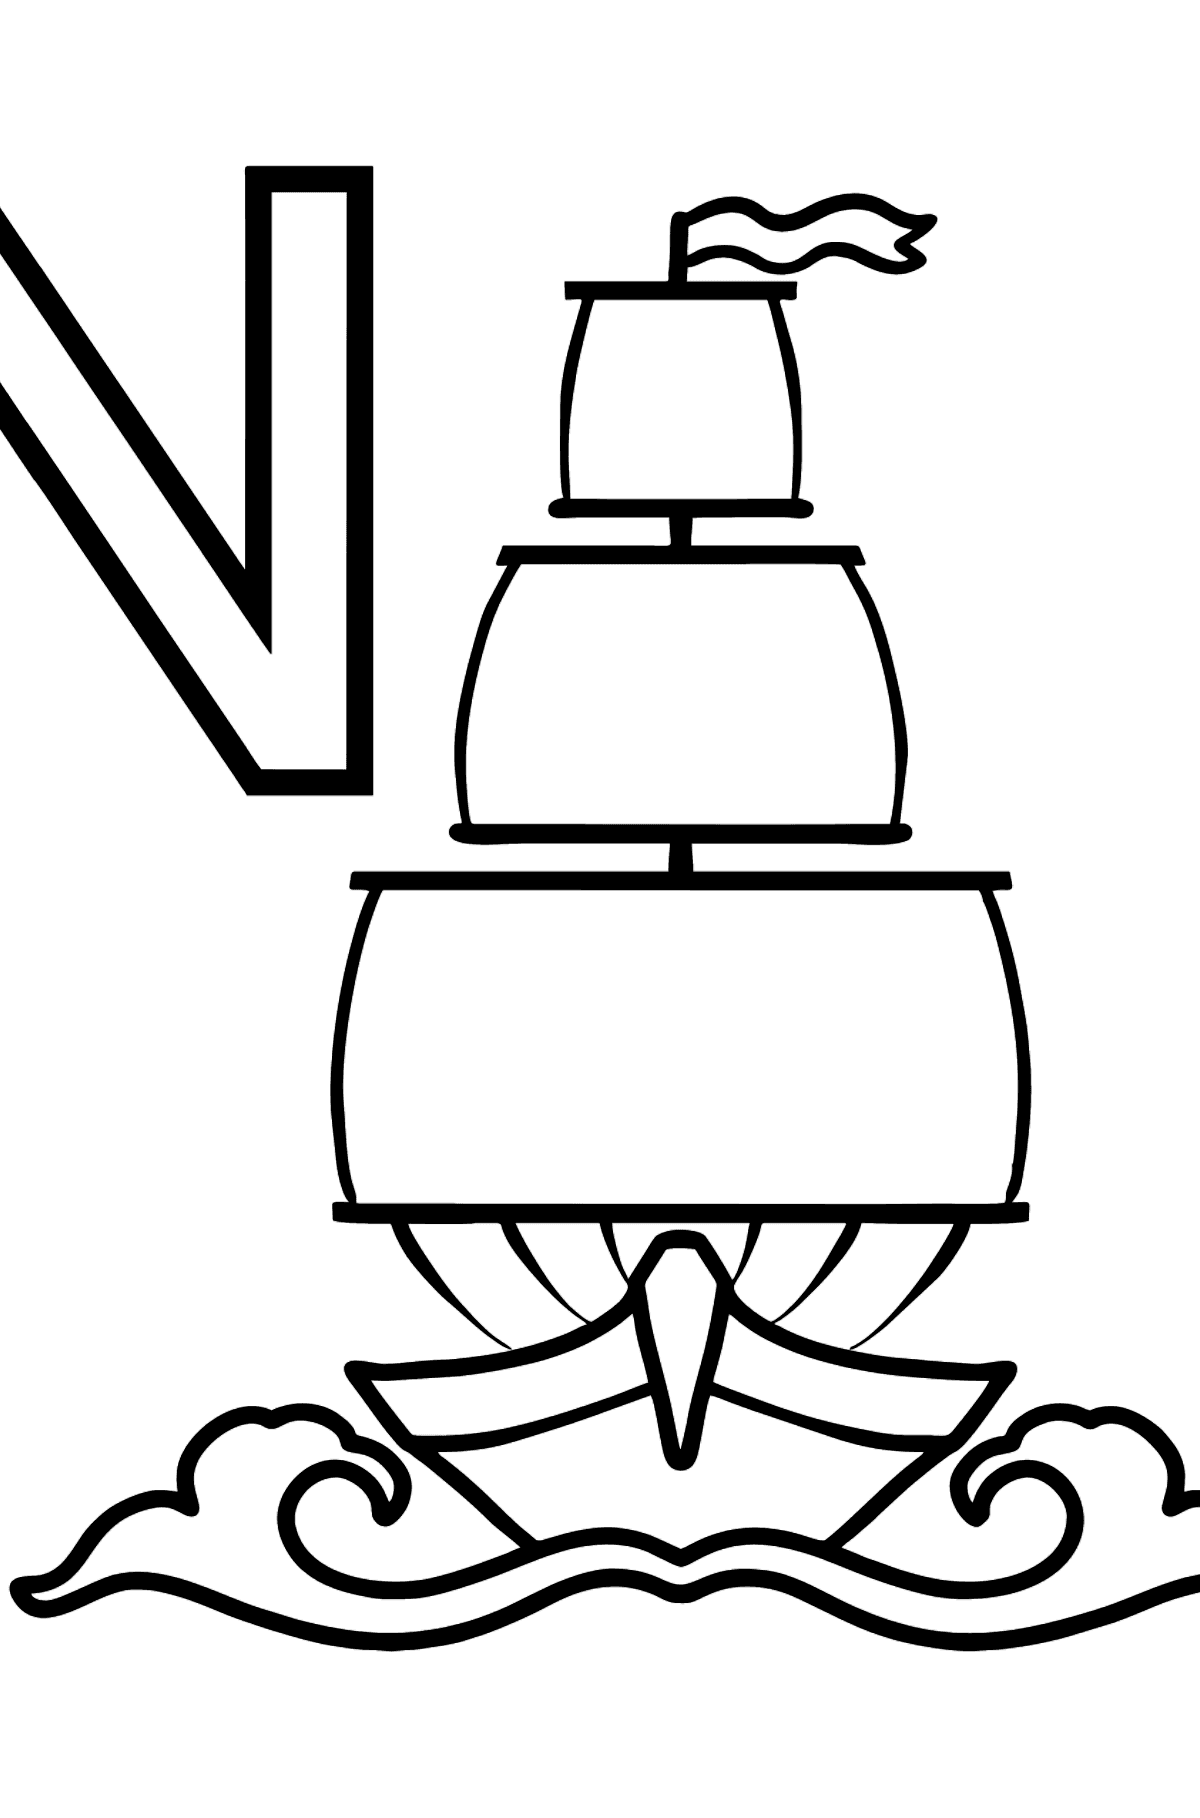 French Letter N coloring pages - NAVIRE - Coloring Pages for Kids